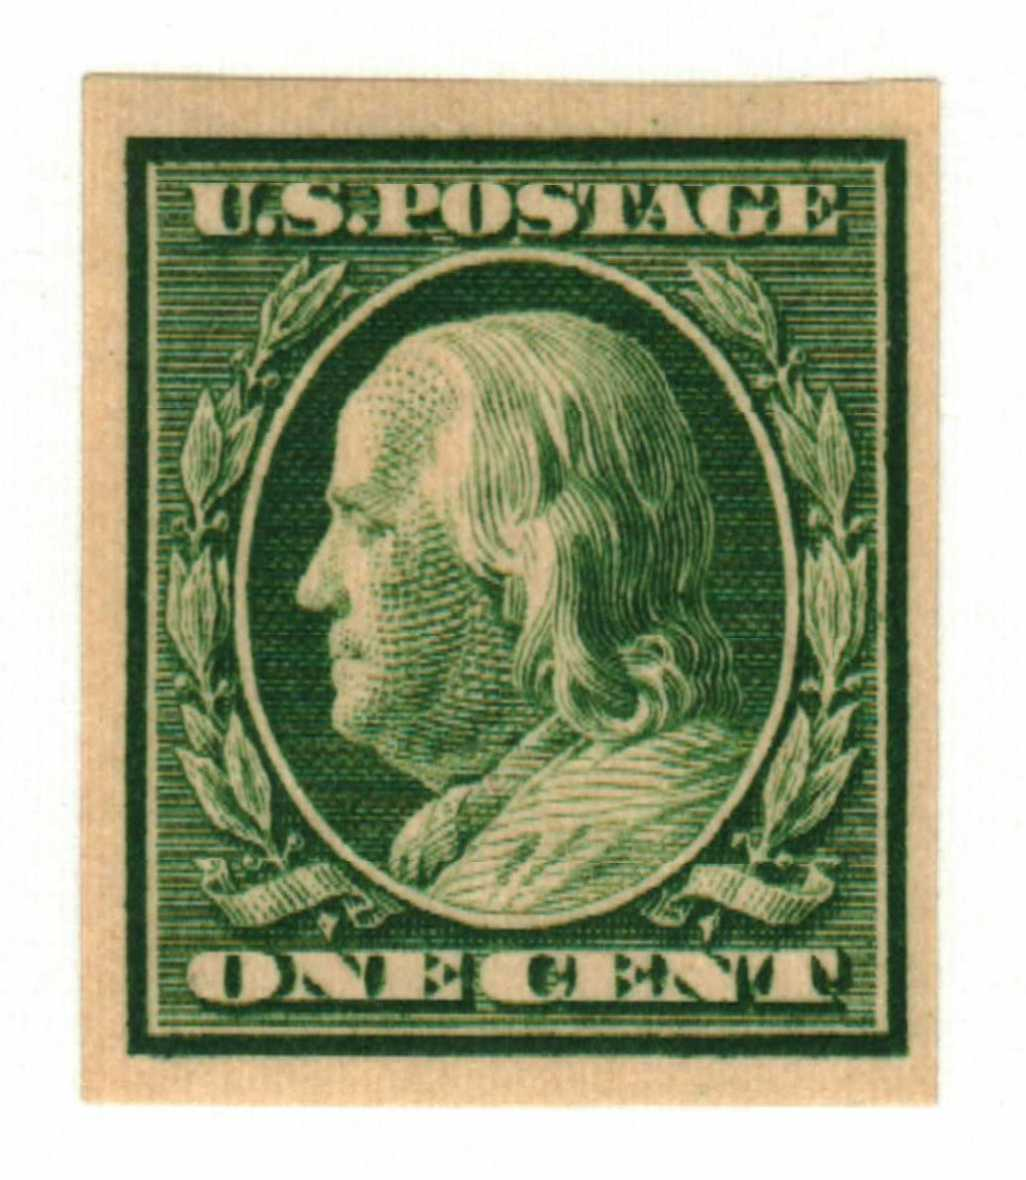 1910 1c Franklin, green, single line watermark, imperforate